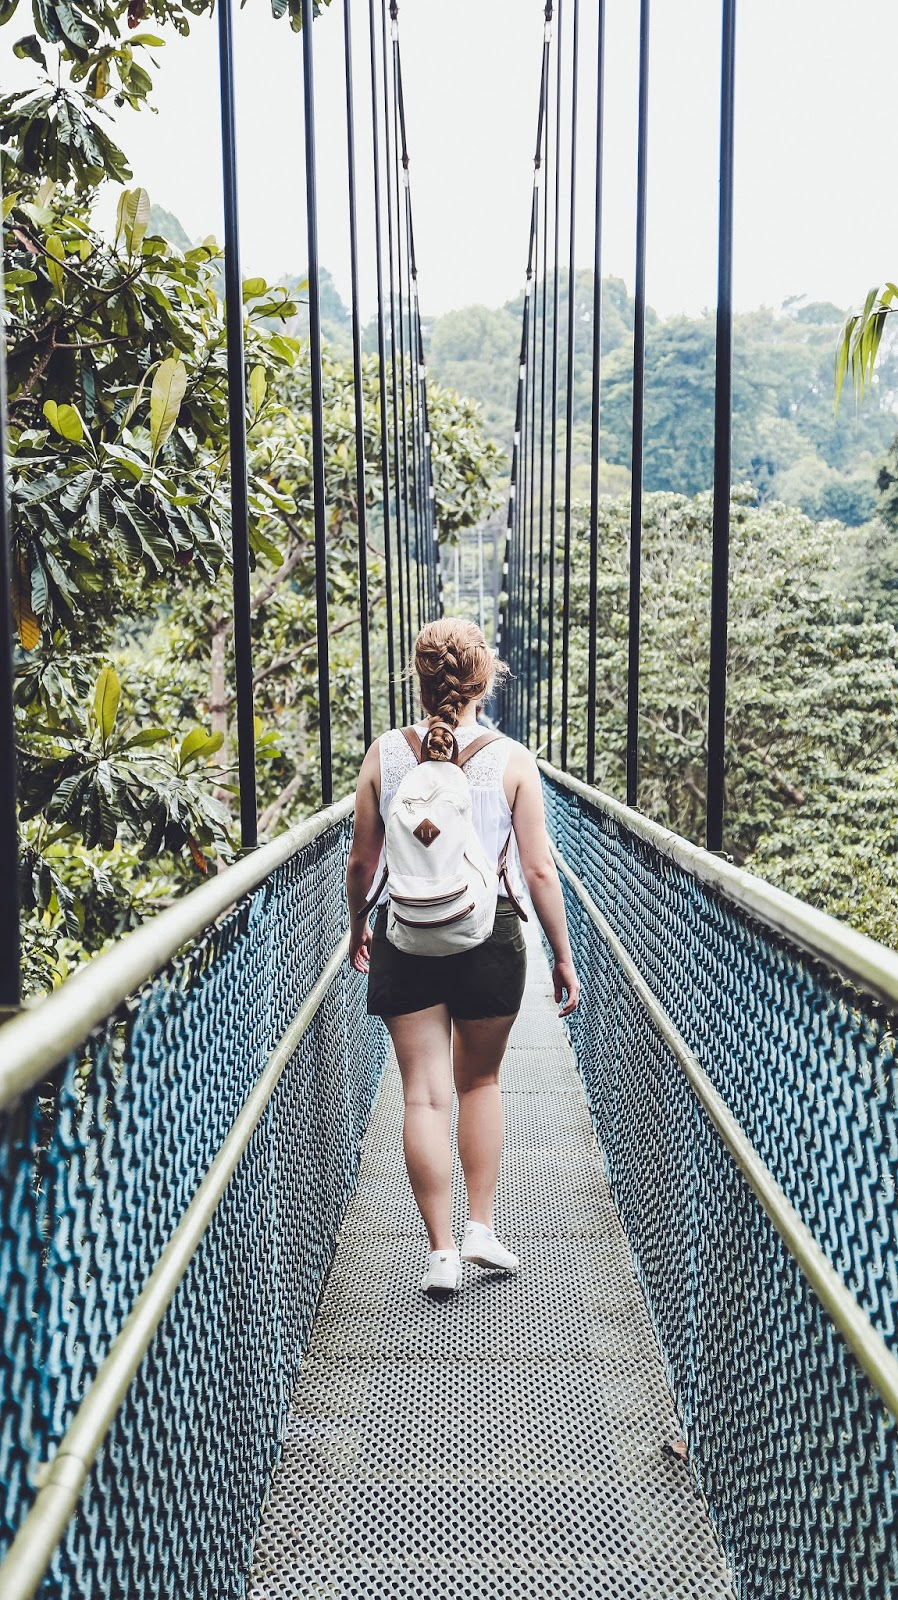 4 Ways To Explore The MacRitchie Reservoir TreeTop Walk in Singapore